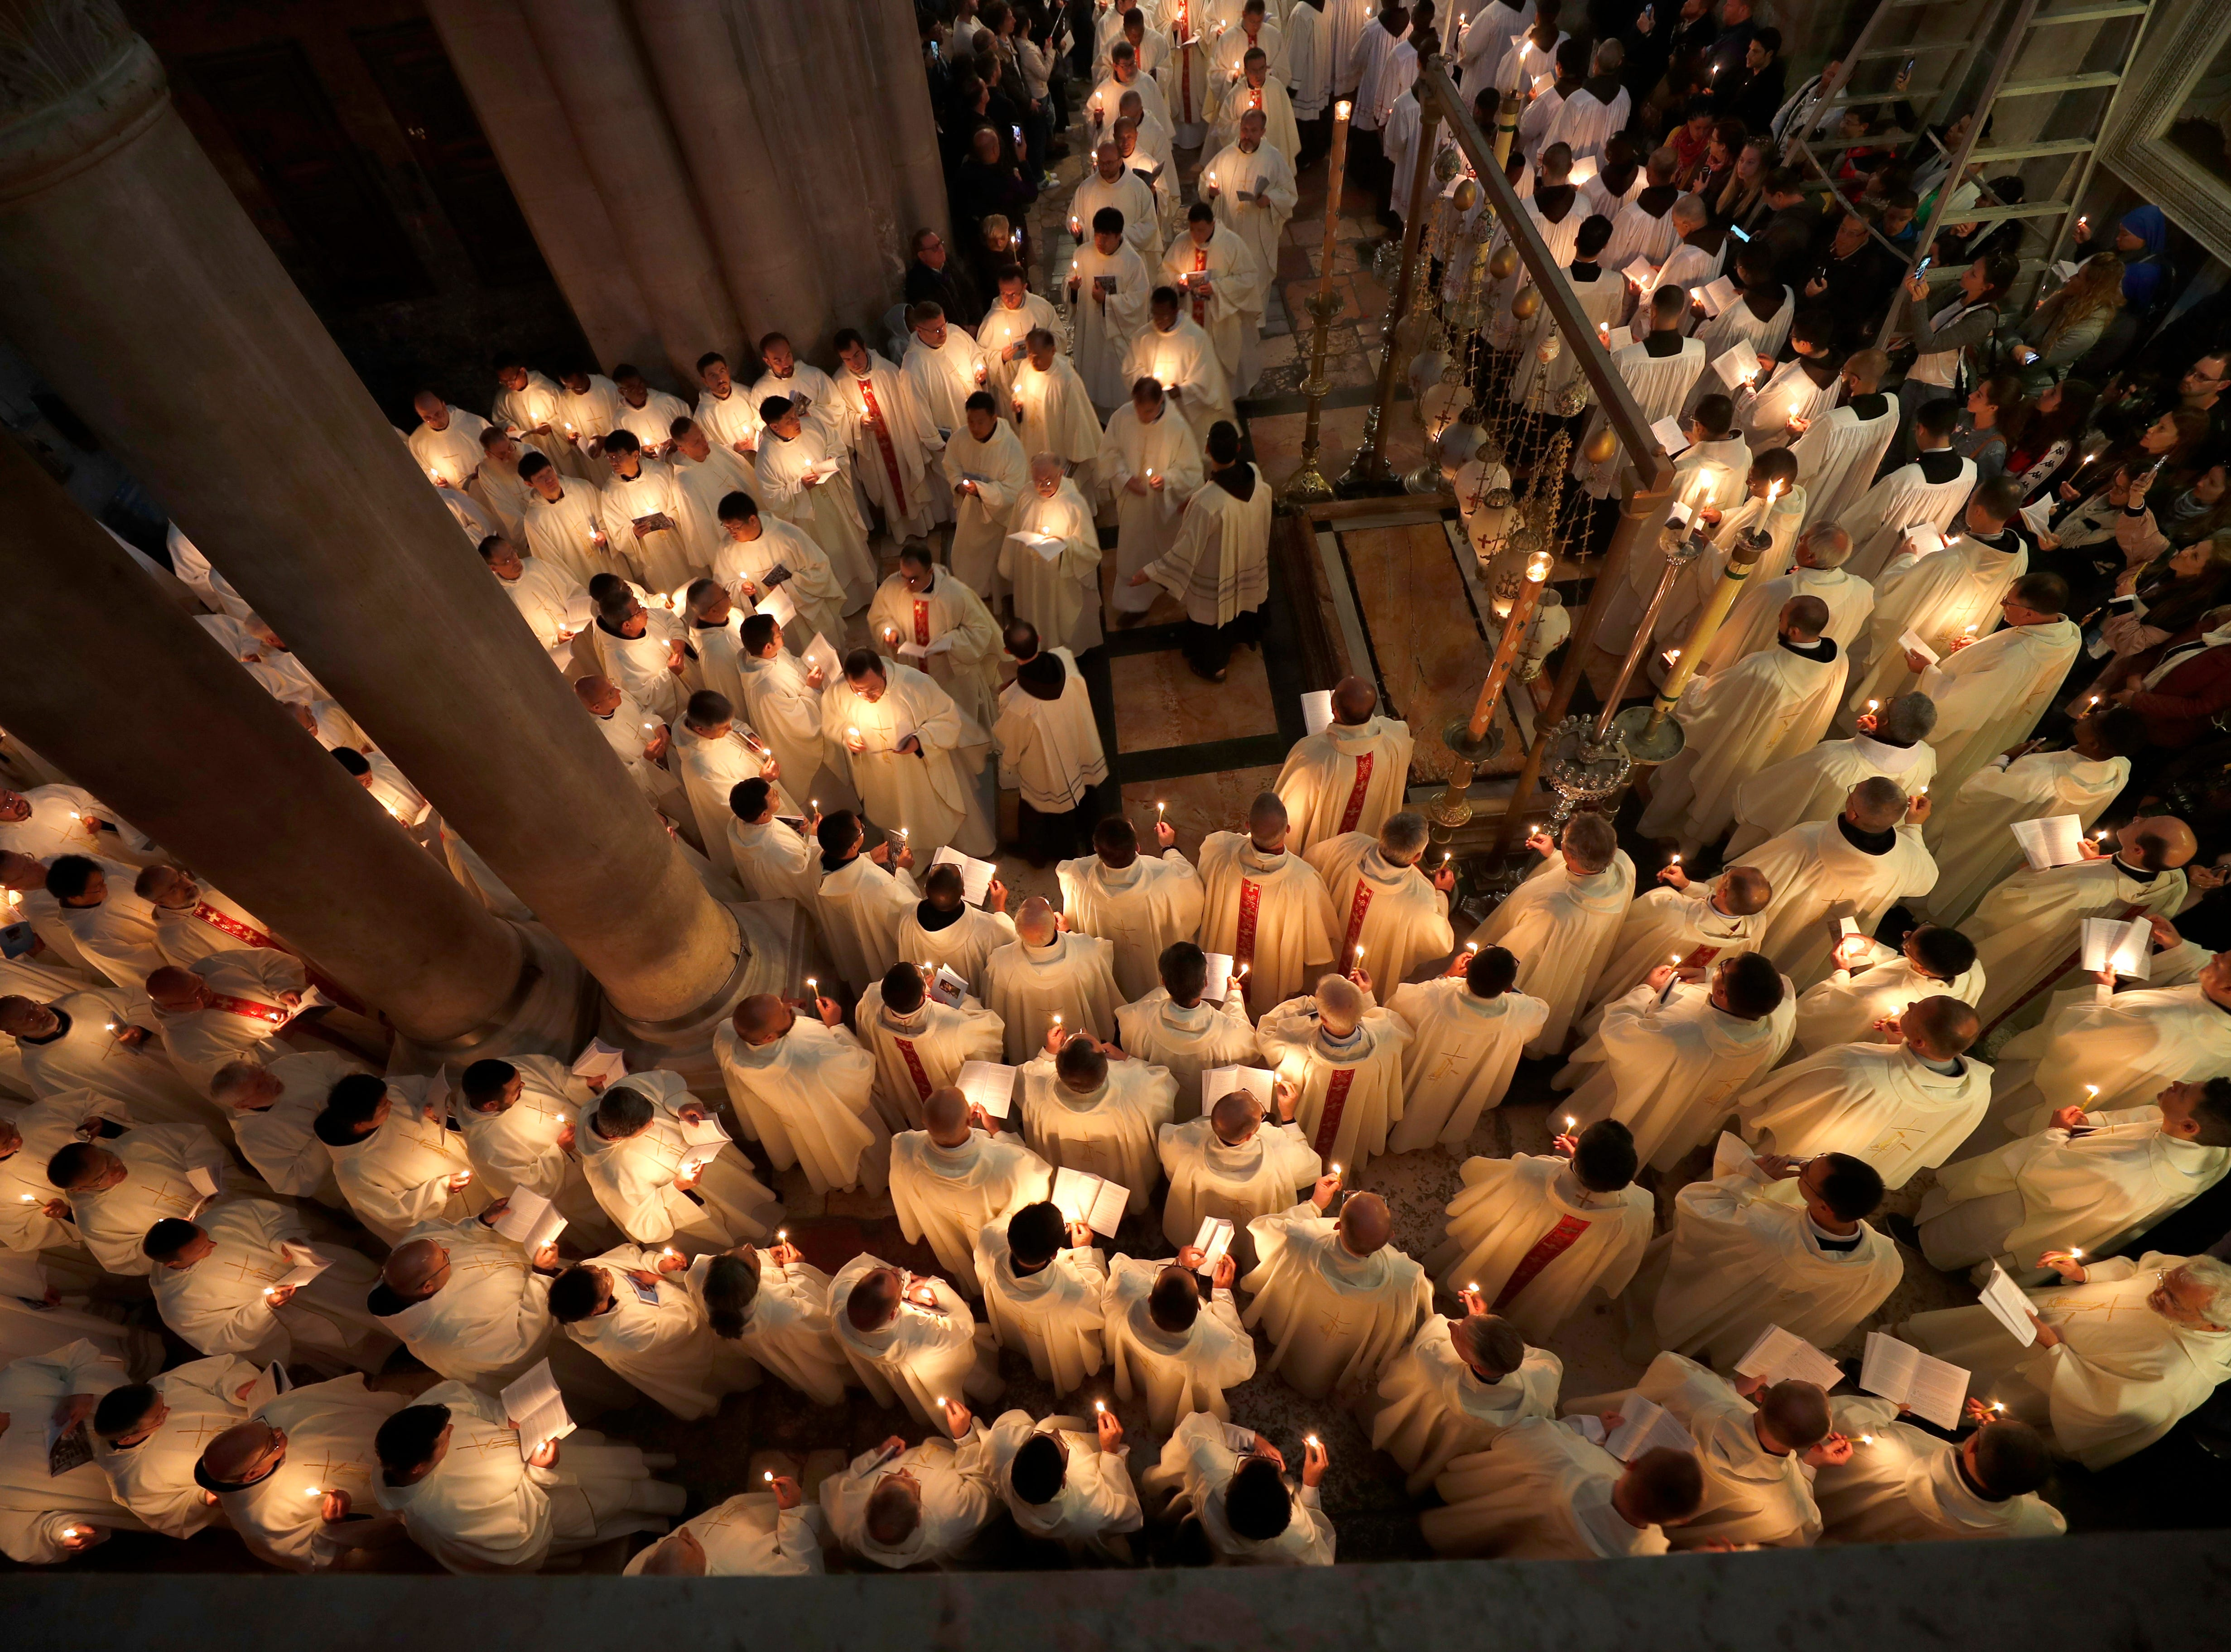 Christian worshippers take part in the procession of the holy Thursday, during the Catholic Washing of the Feet ceremony on Easter Holy Week, at the Church of the Holy Sepulcher in Jerusalem's old city on April 18, 2019.